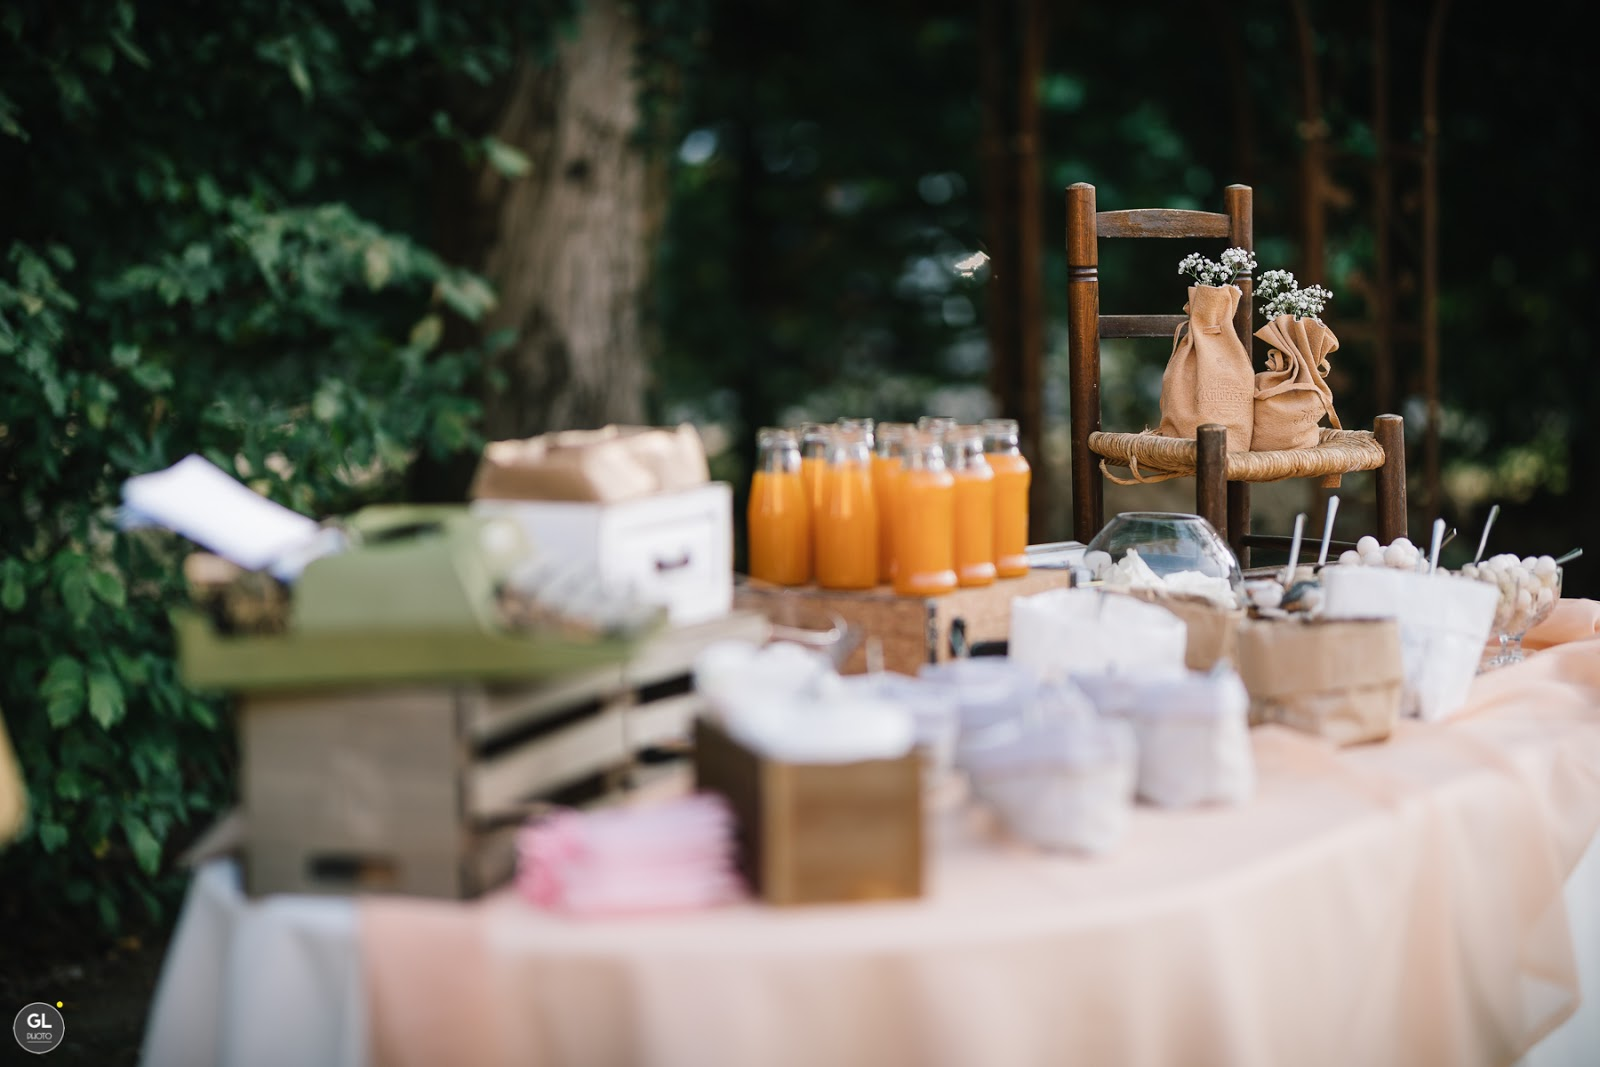 Come allestire una sweet table in stile rustico